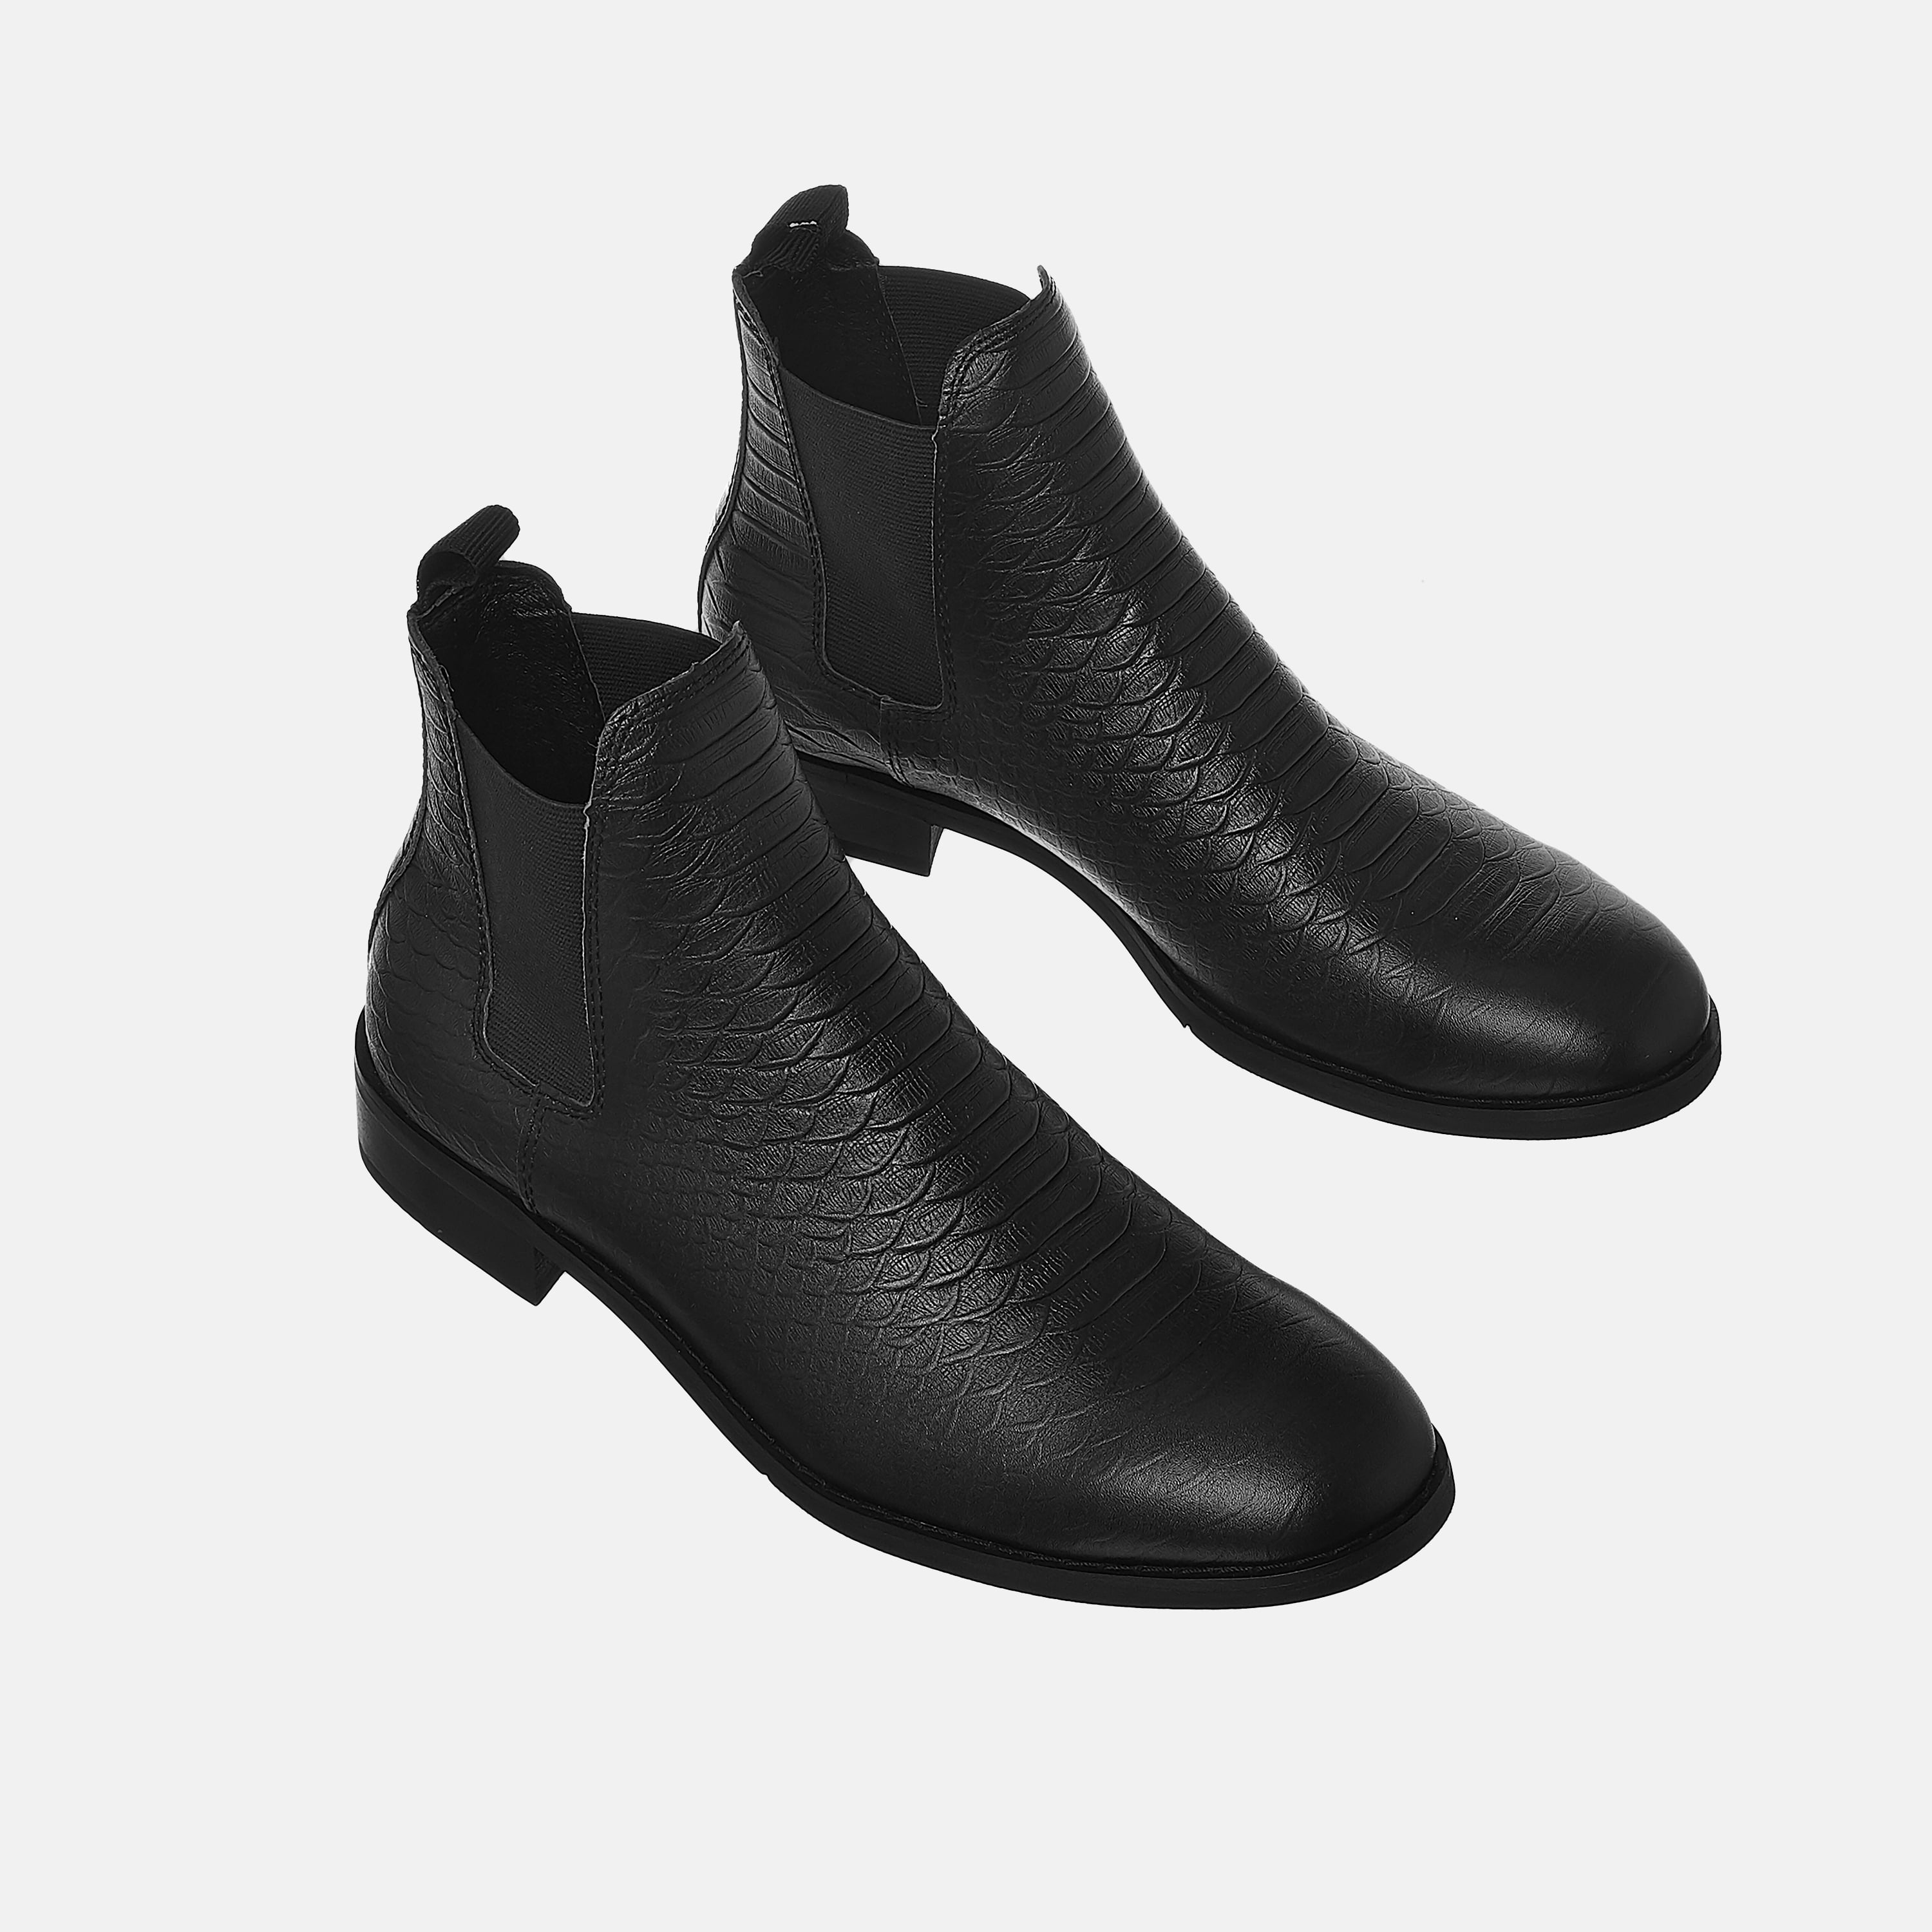 The Wild Chelsea Boots In Black The Wild Chelsea Boots In Black Product thumbnail 1